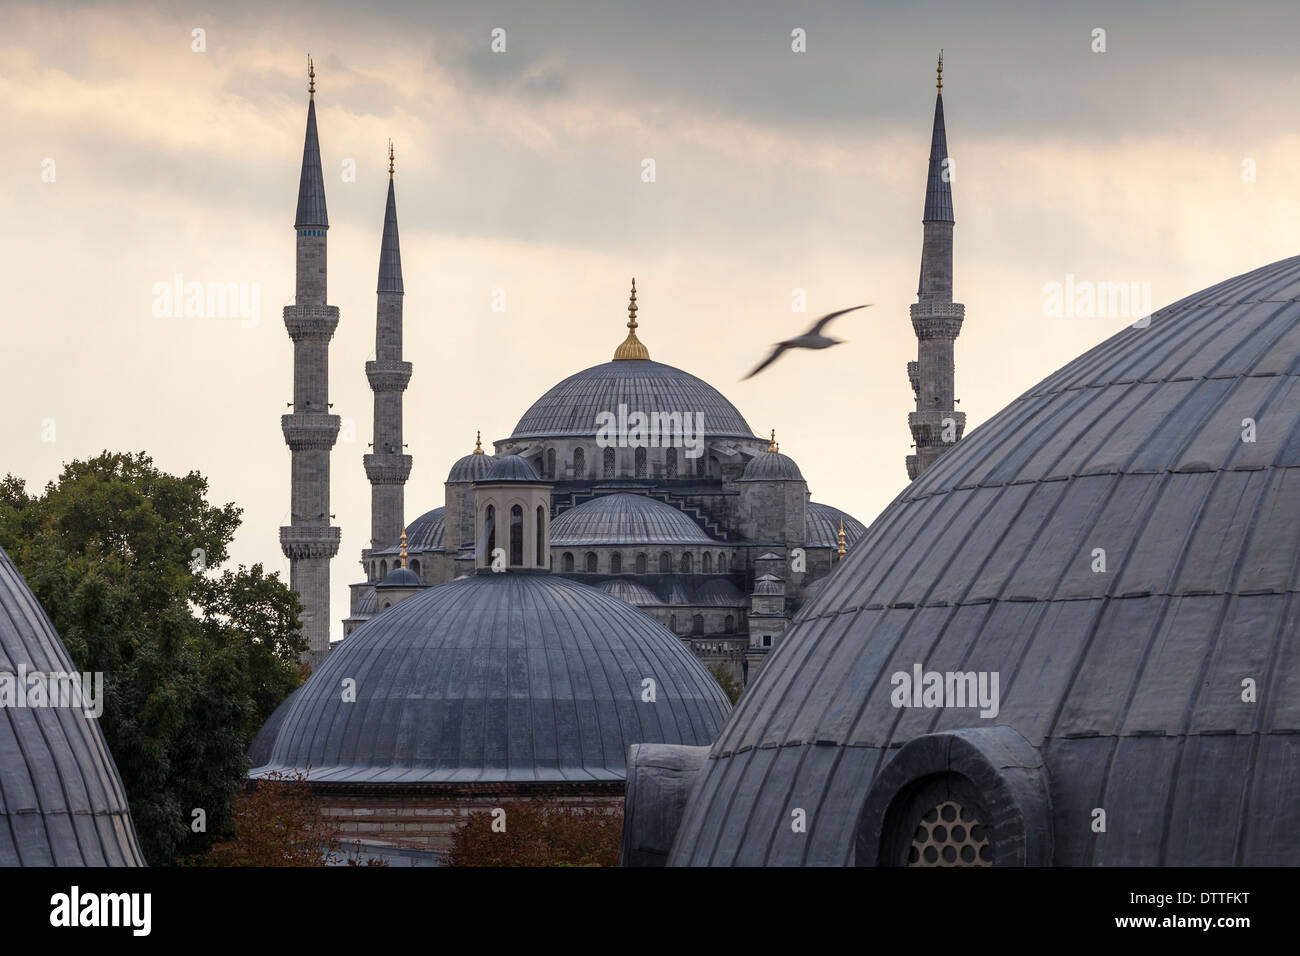 Domes and towers of Blue Mosque, Istanbul, Turkey - Stock Image